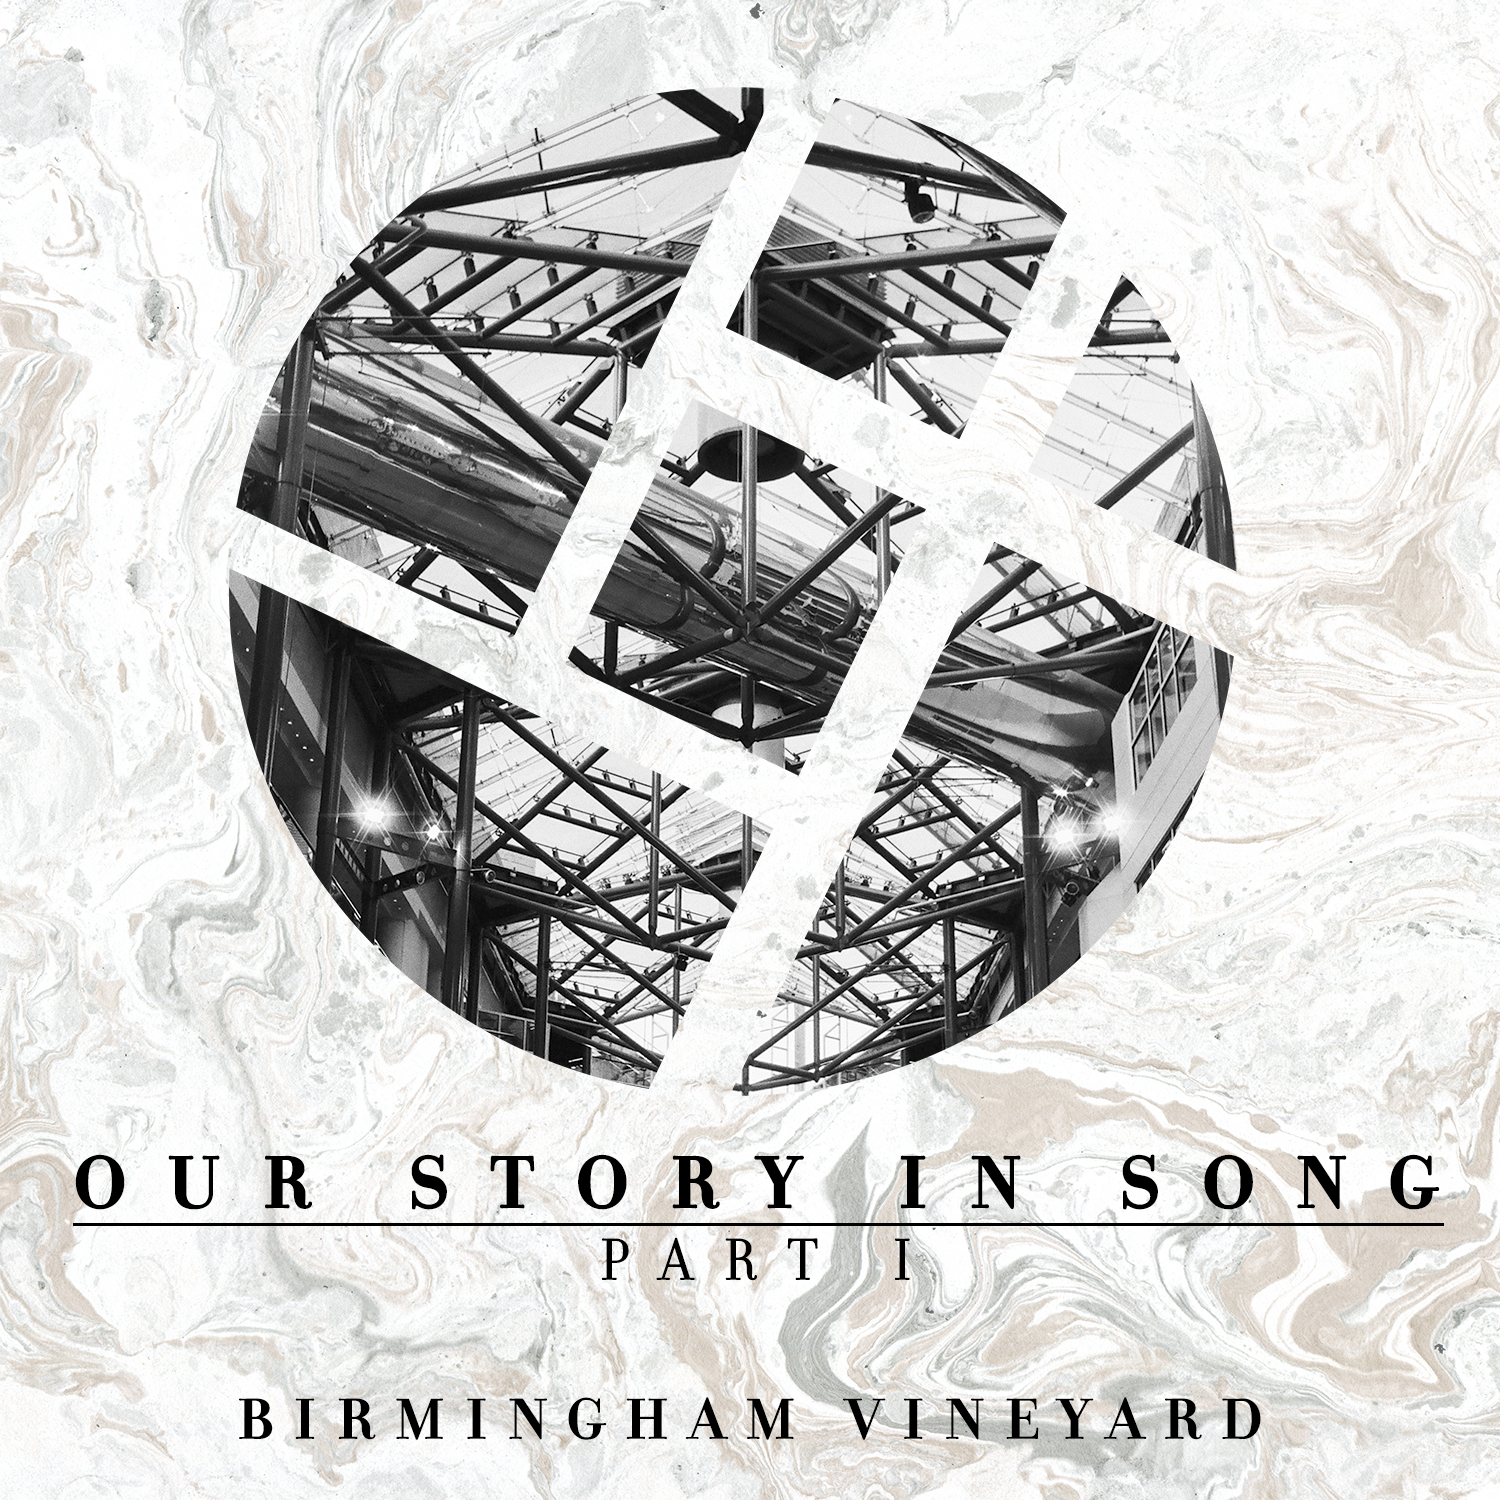 A collection of songs written as a church that represent who we are. This project praises God for what He's done in us, and invites Him to build His Kingdom, in us and in our city, going forwards.